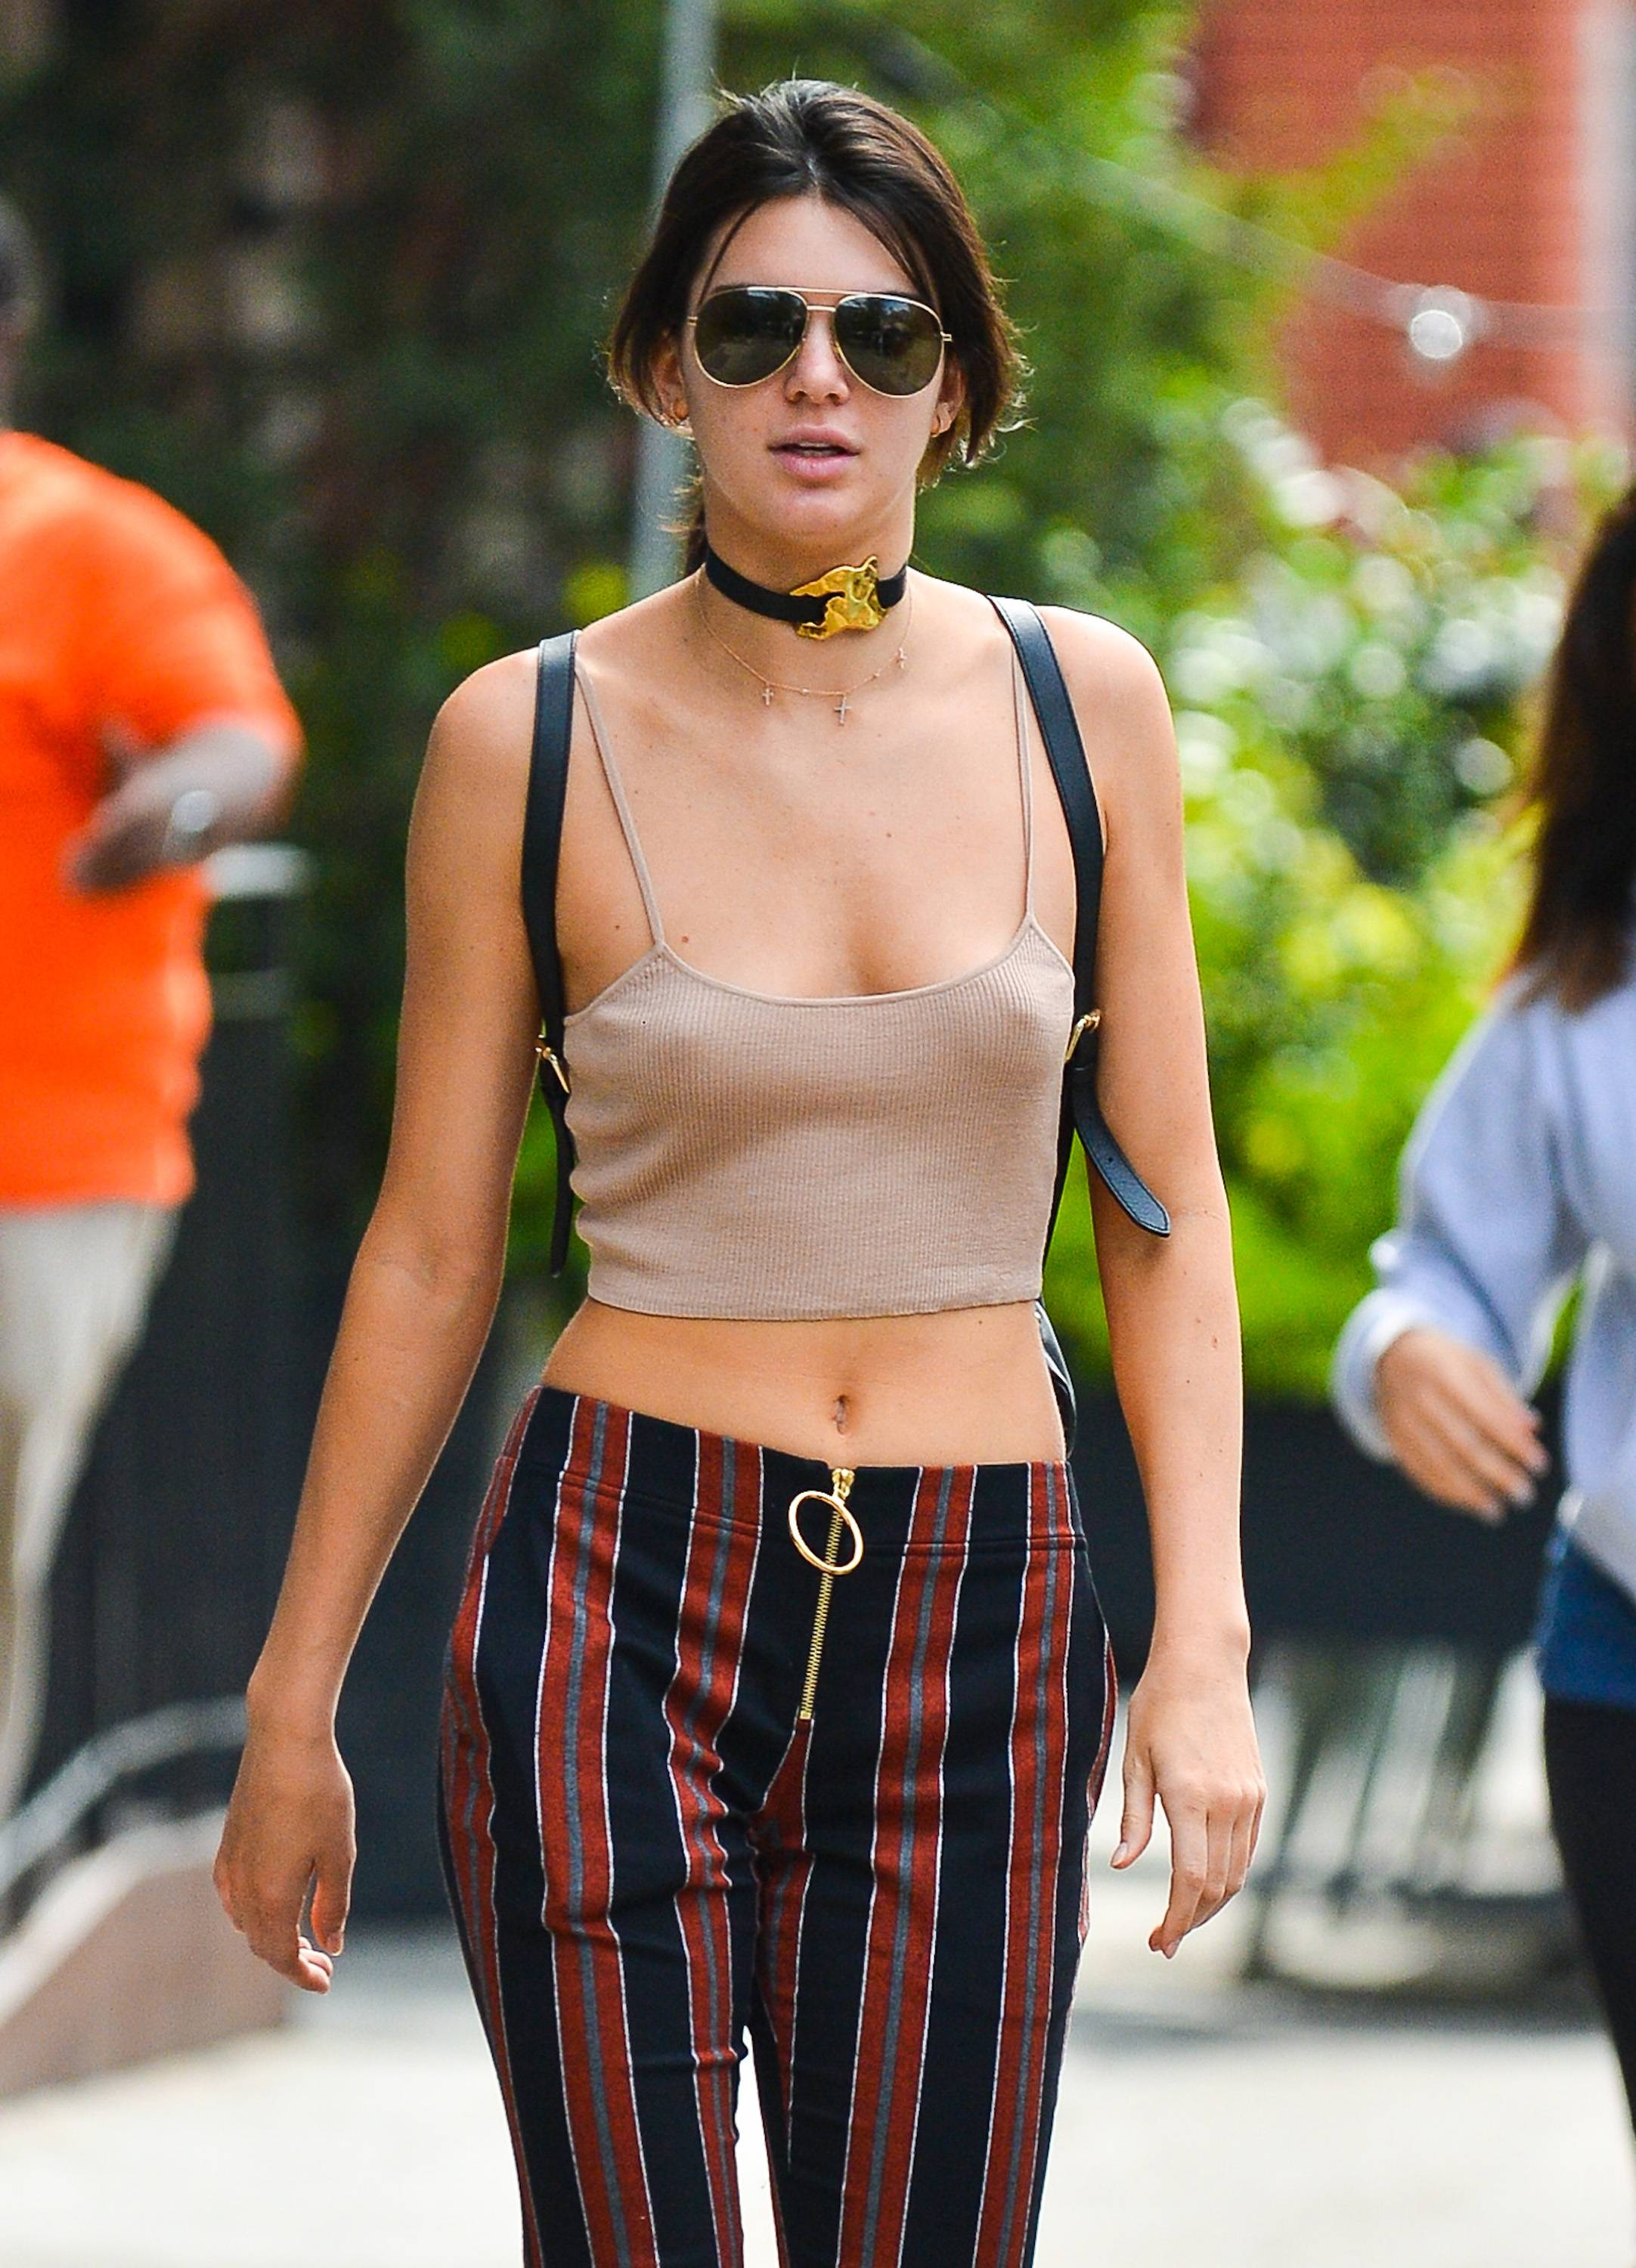 Kendall Jenner With No Bra In This Sexy Tank Top -5255